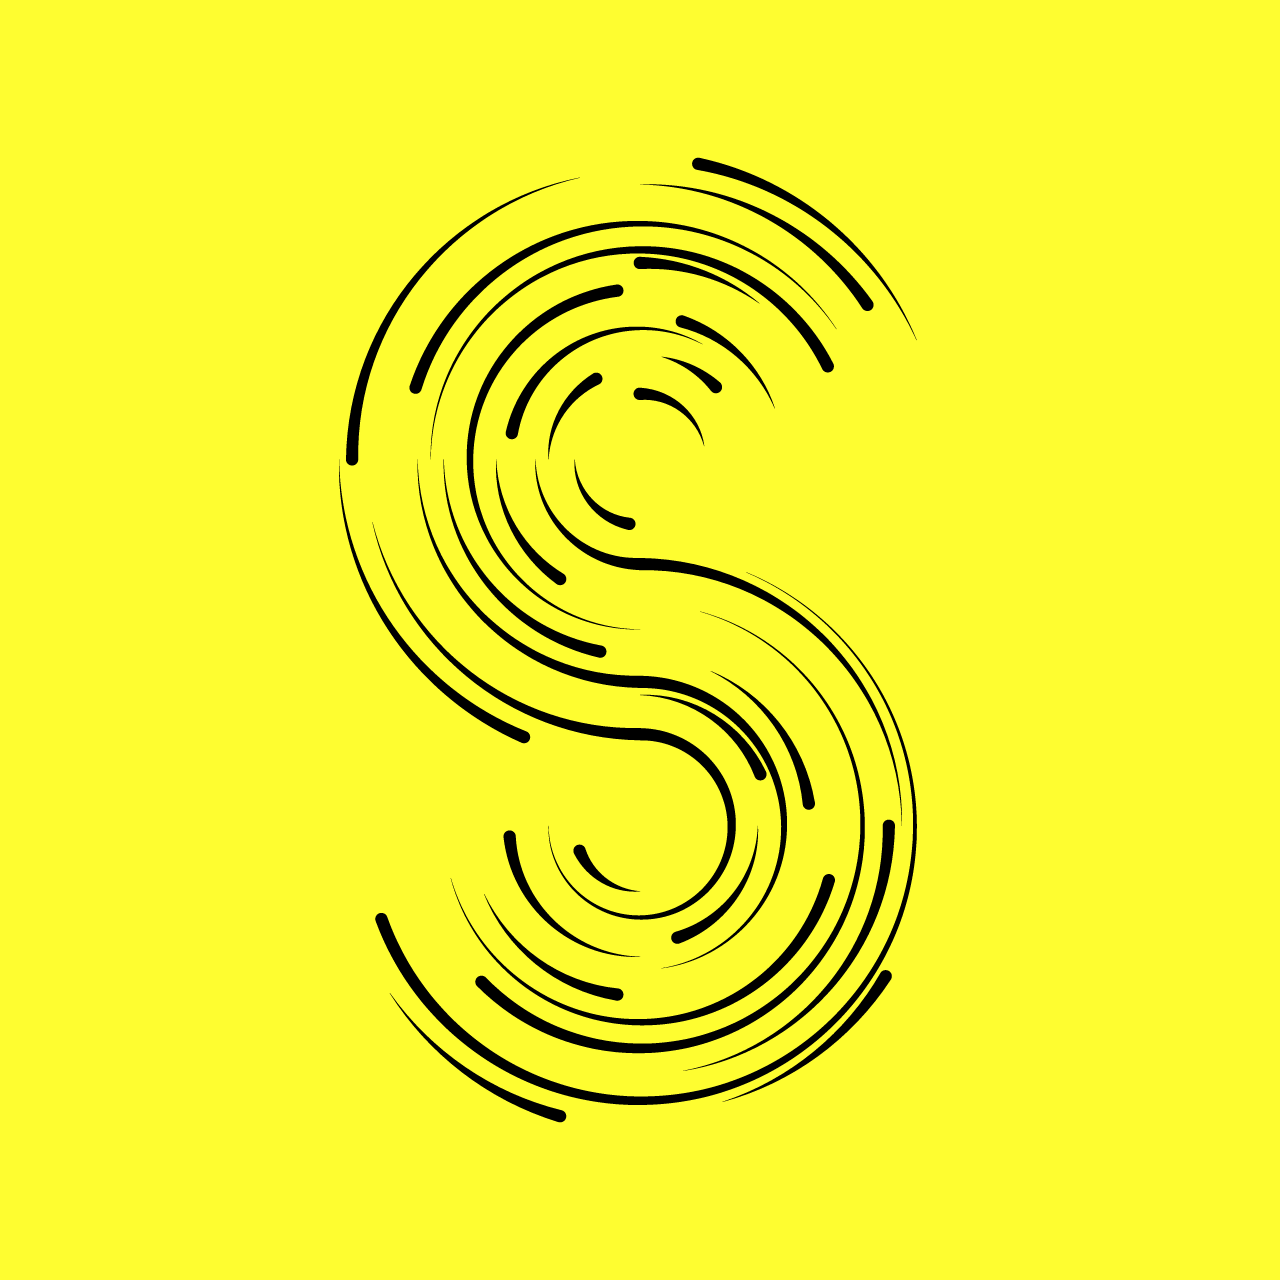 My S submission for 36 Days of Type